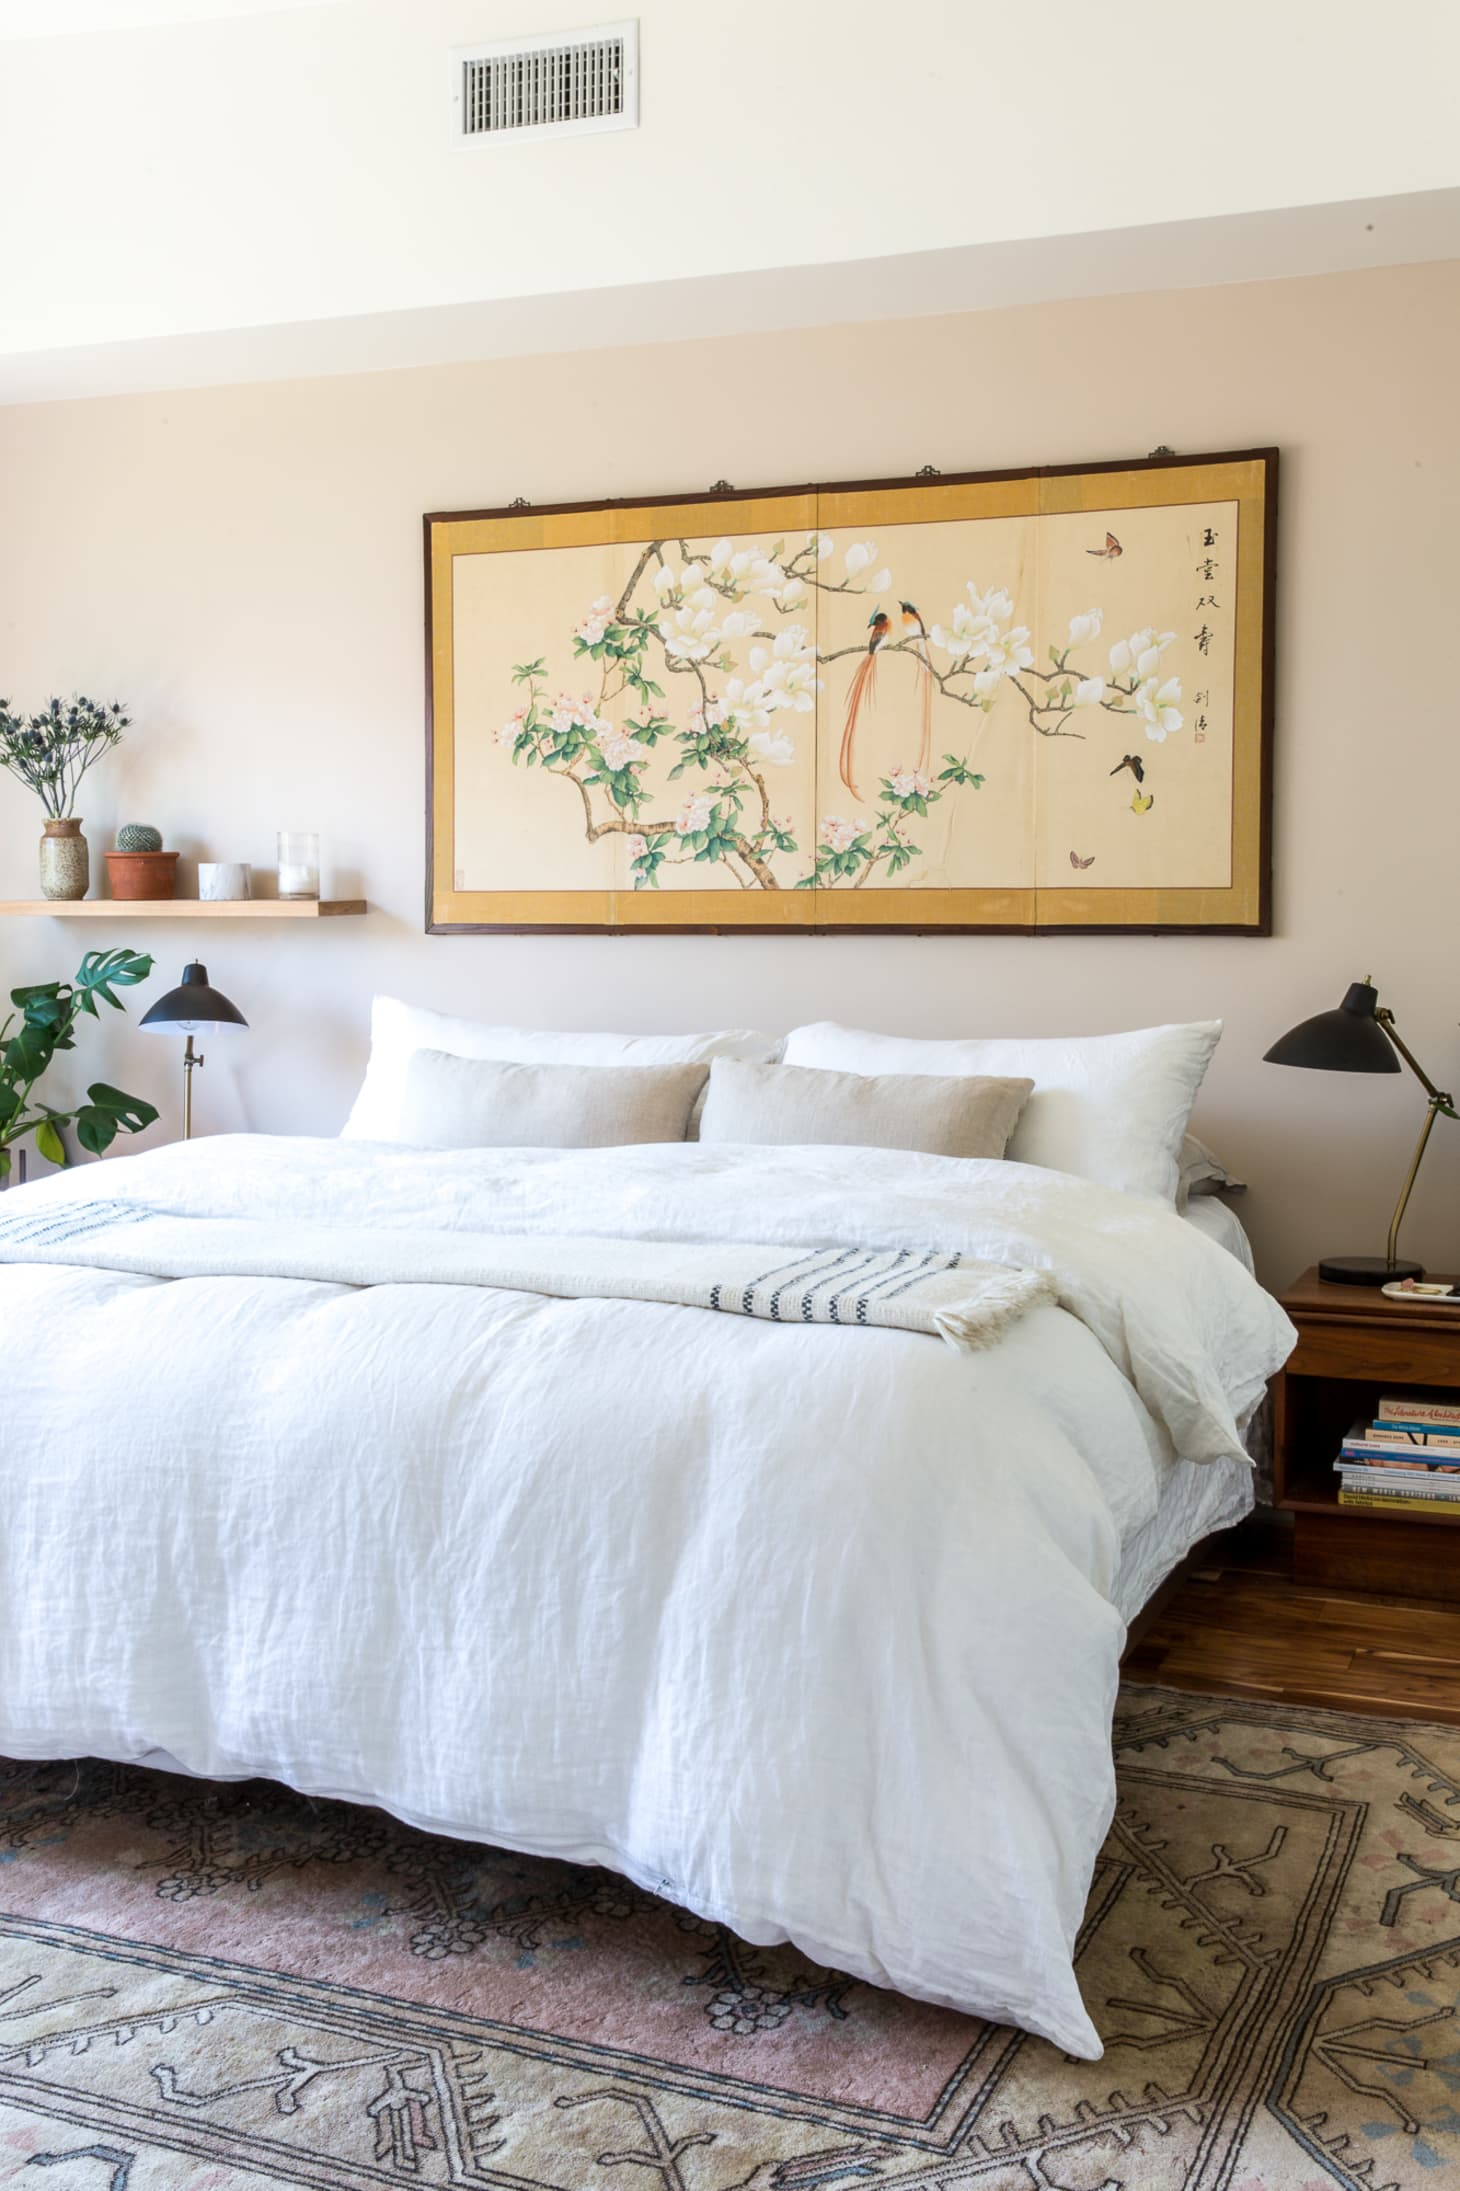 Alternative Headboard Ideas for the Bedroom | Apartment Therapy